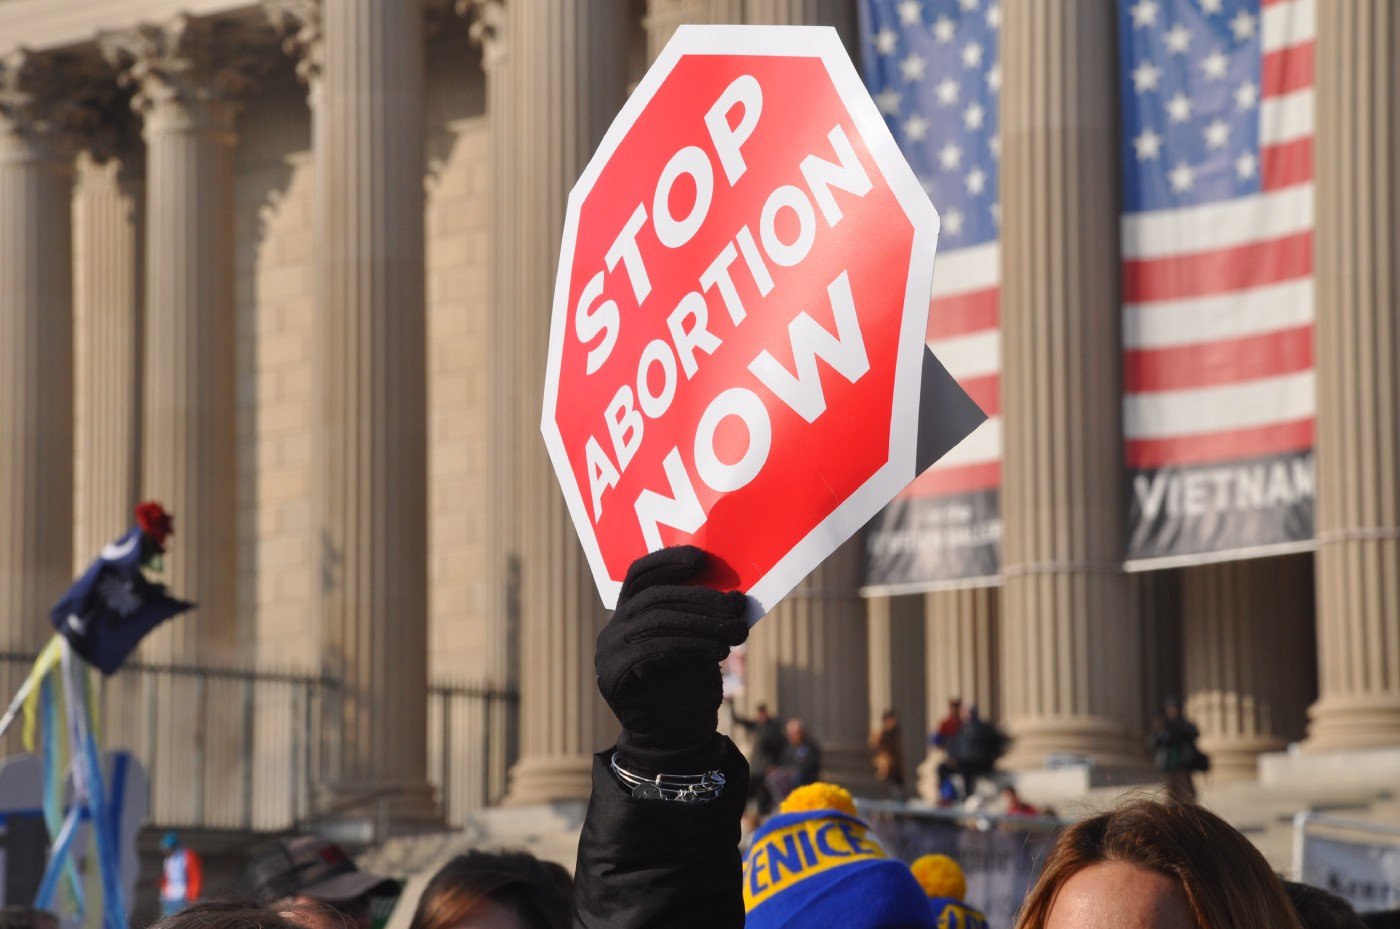 The Pro-Life Lobby isn't Righteous  It's Racist  - Dialogue